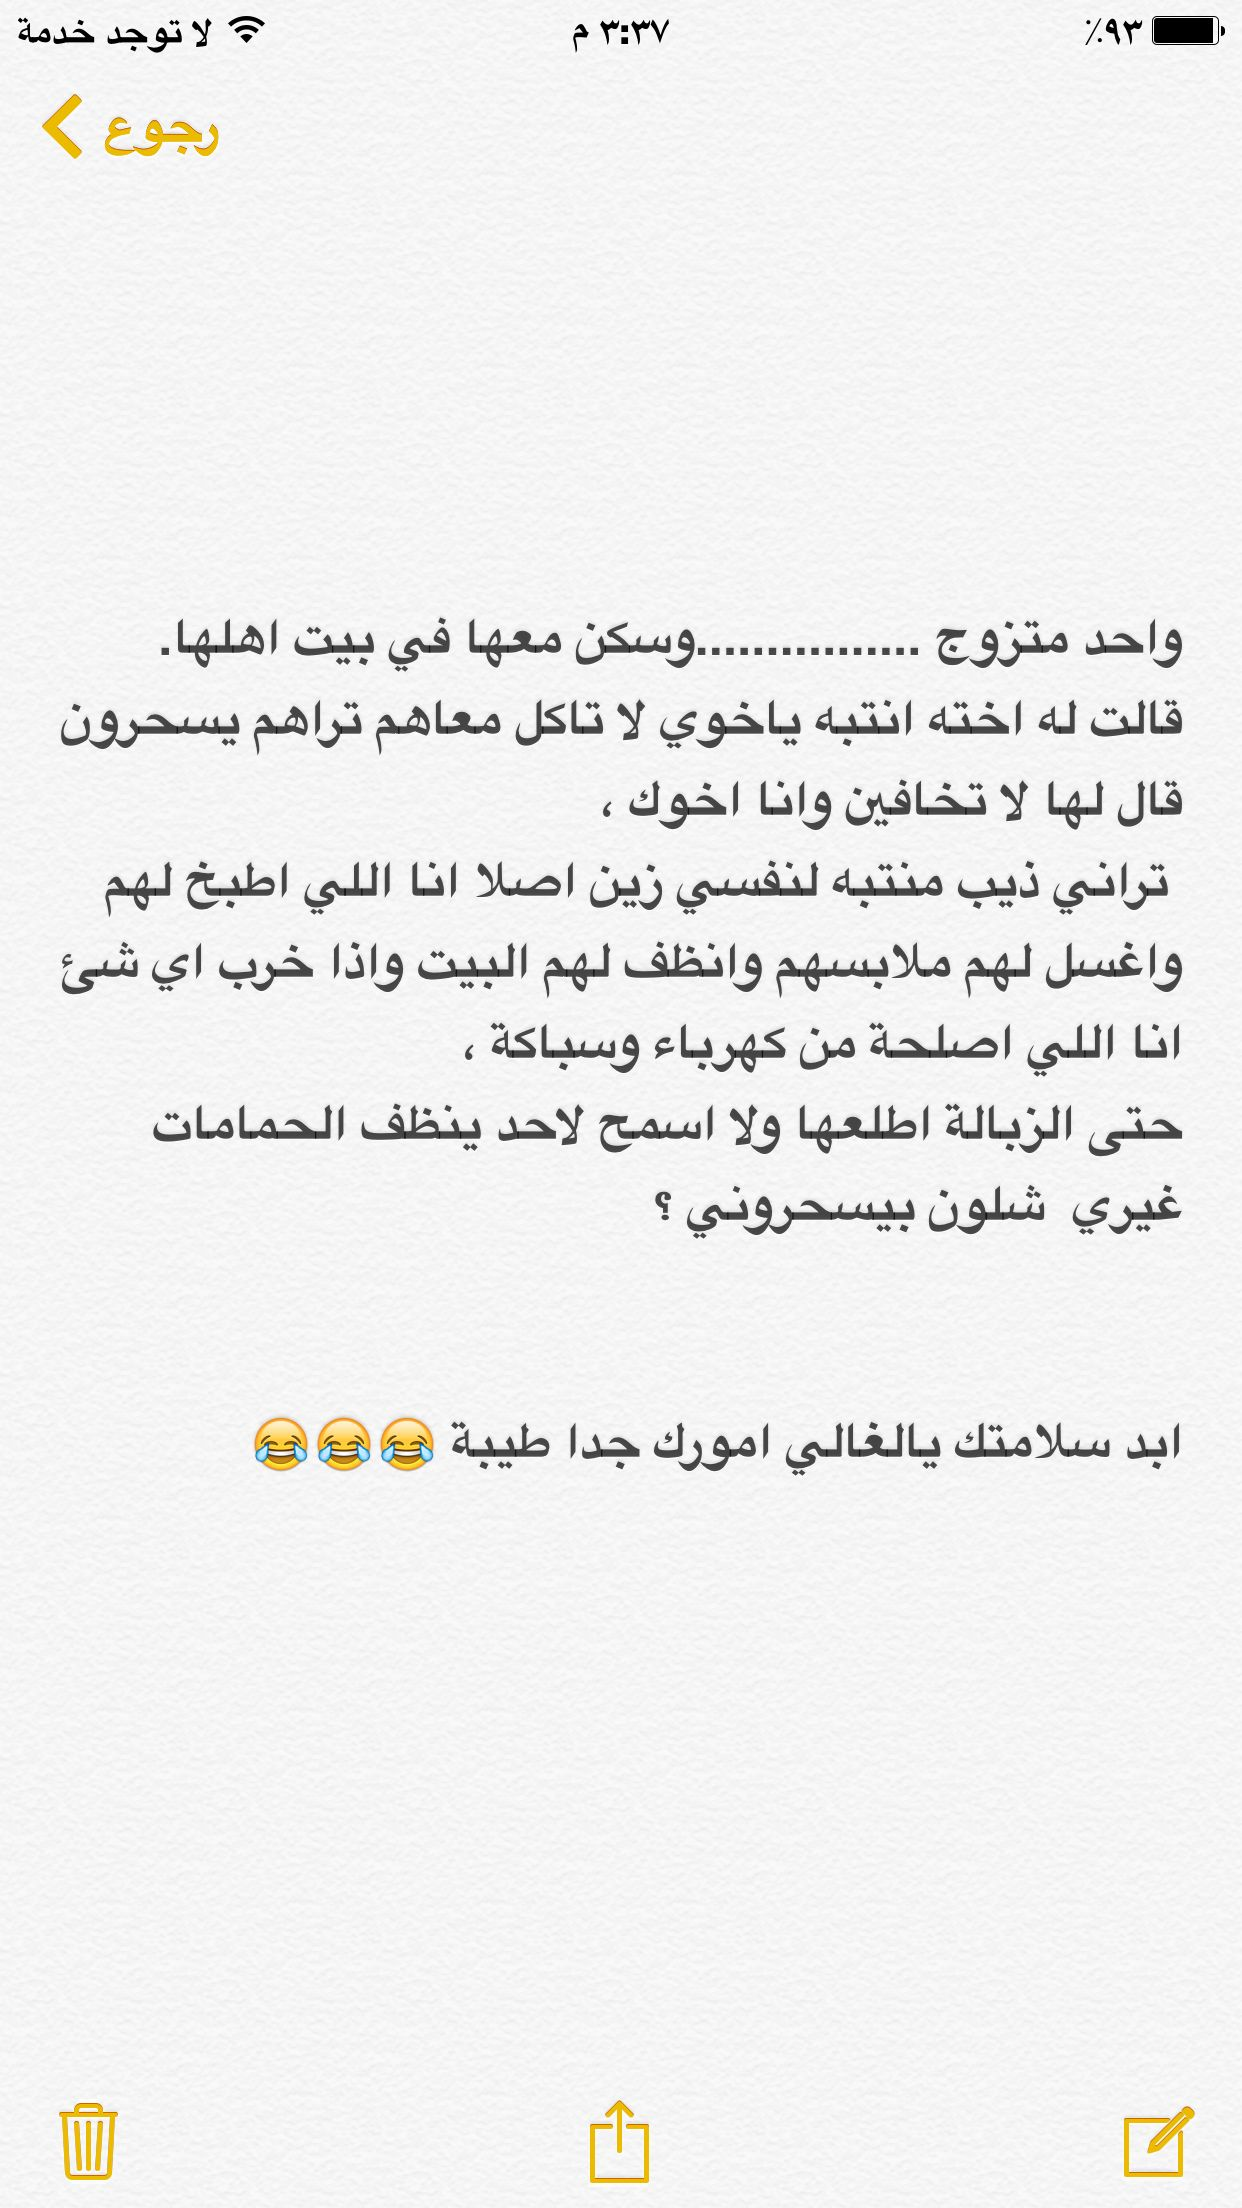 امورك طيبة هههههههههههههه A Wisdom Quotes Life Friends Quotes Arabic Funny